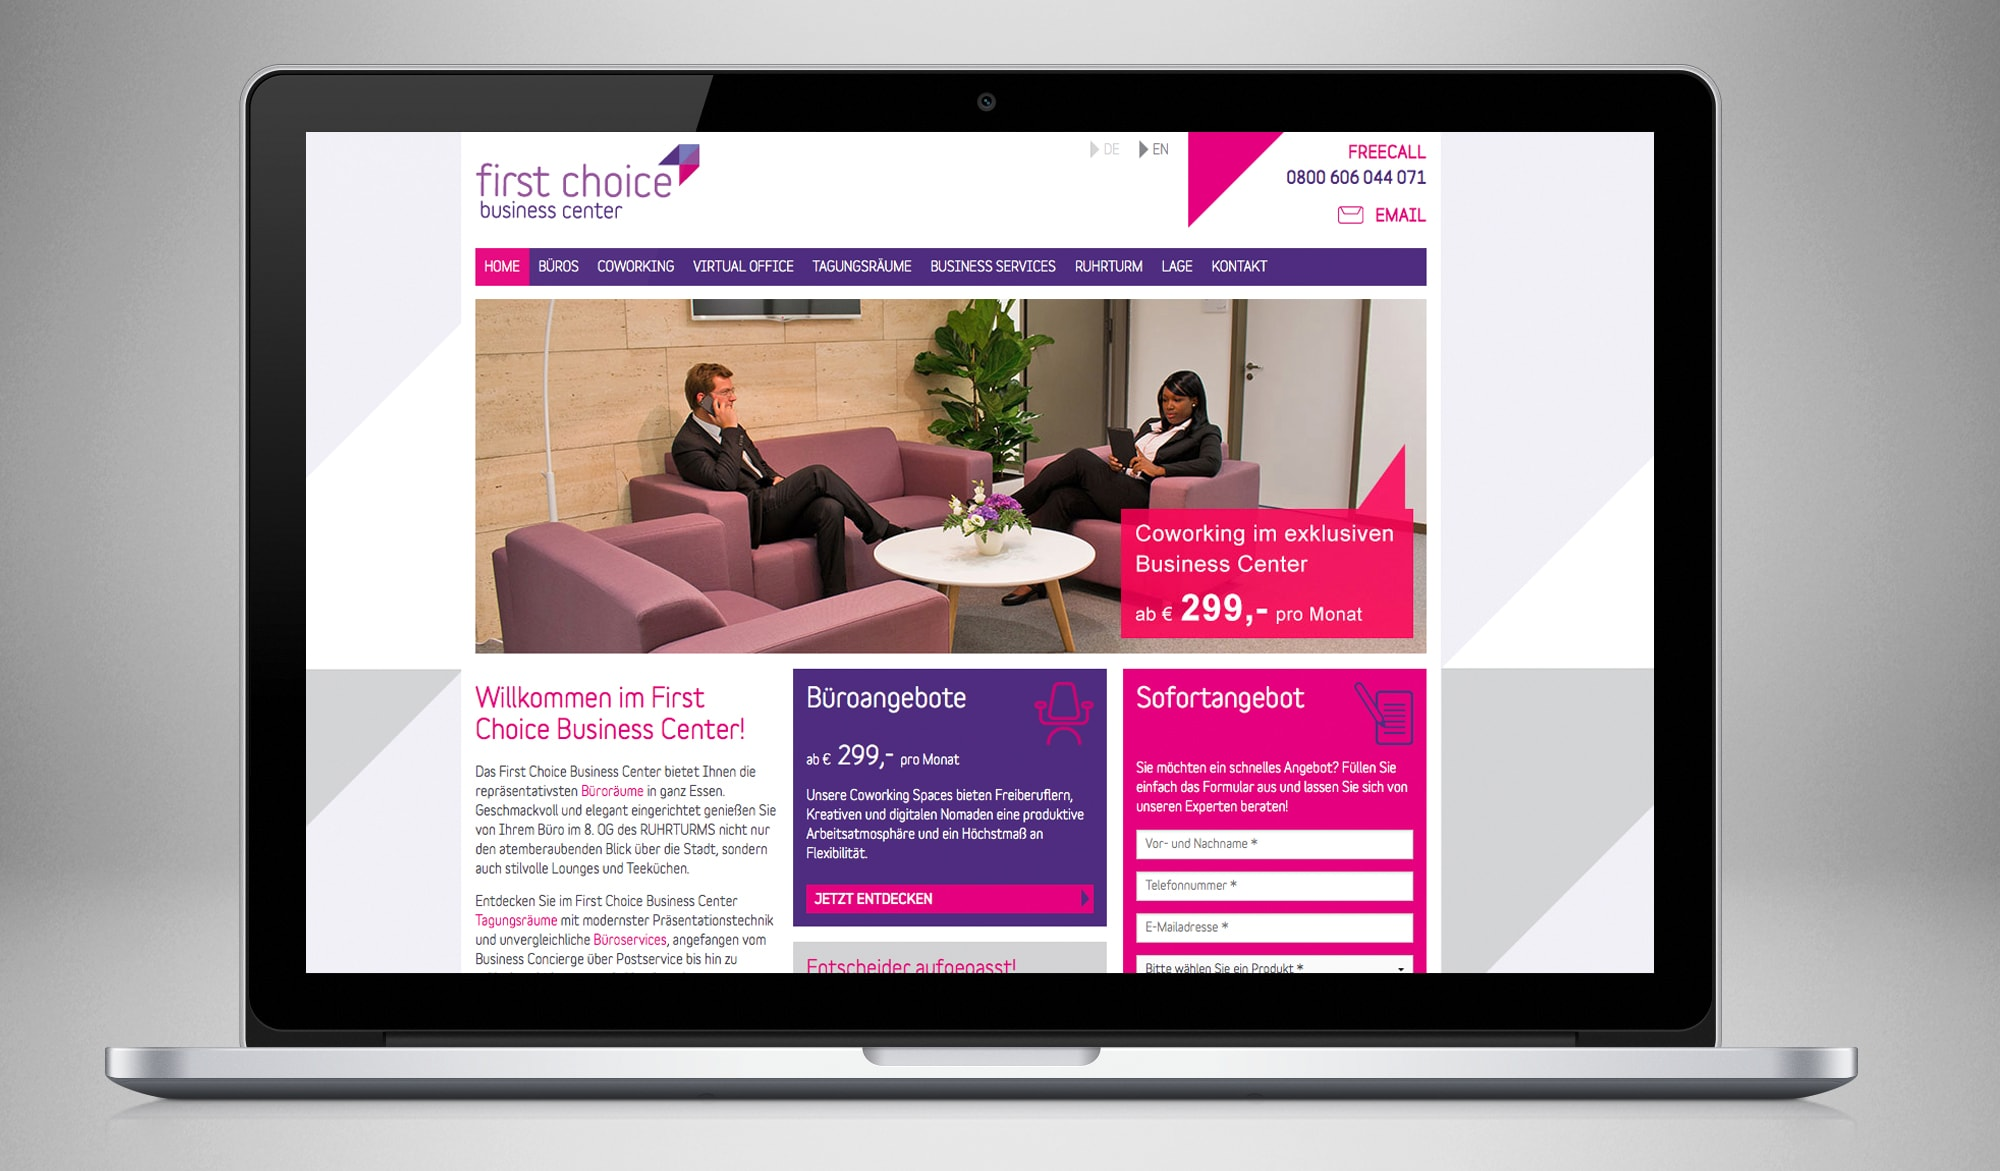 First Choice Busienss Centre - website